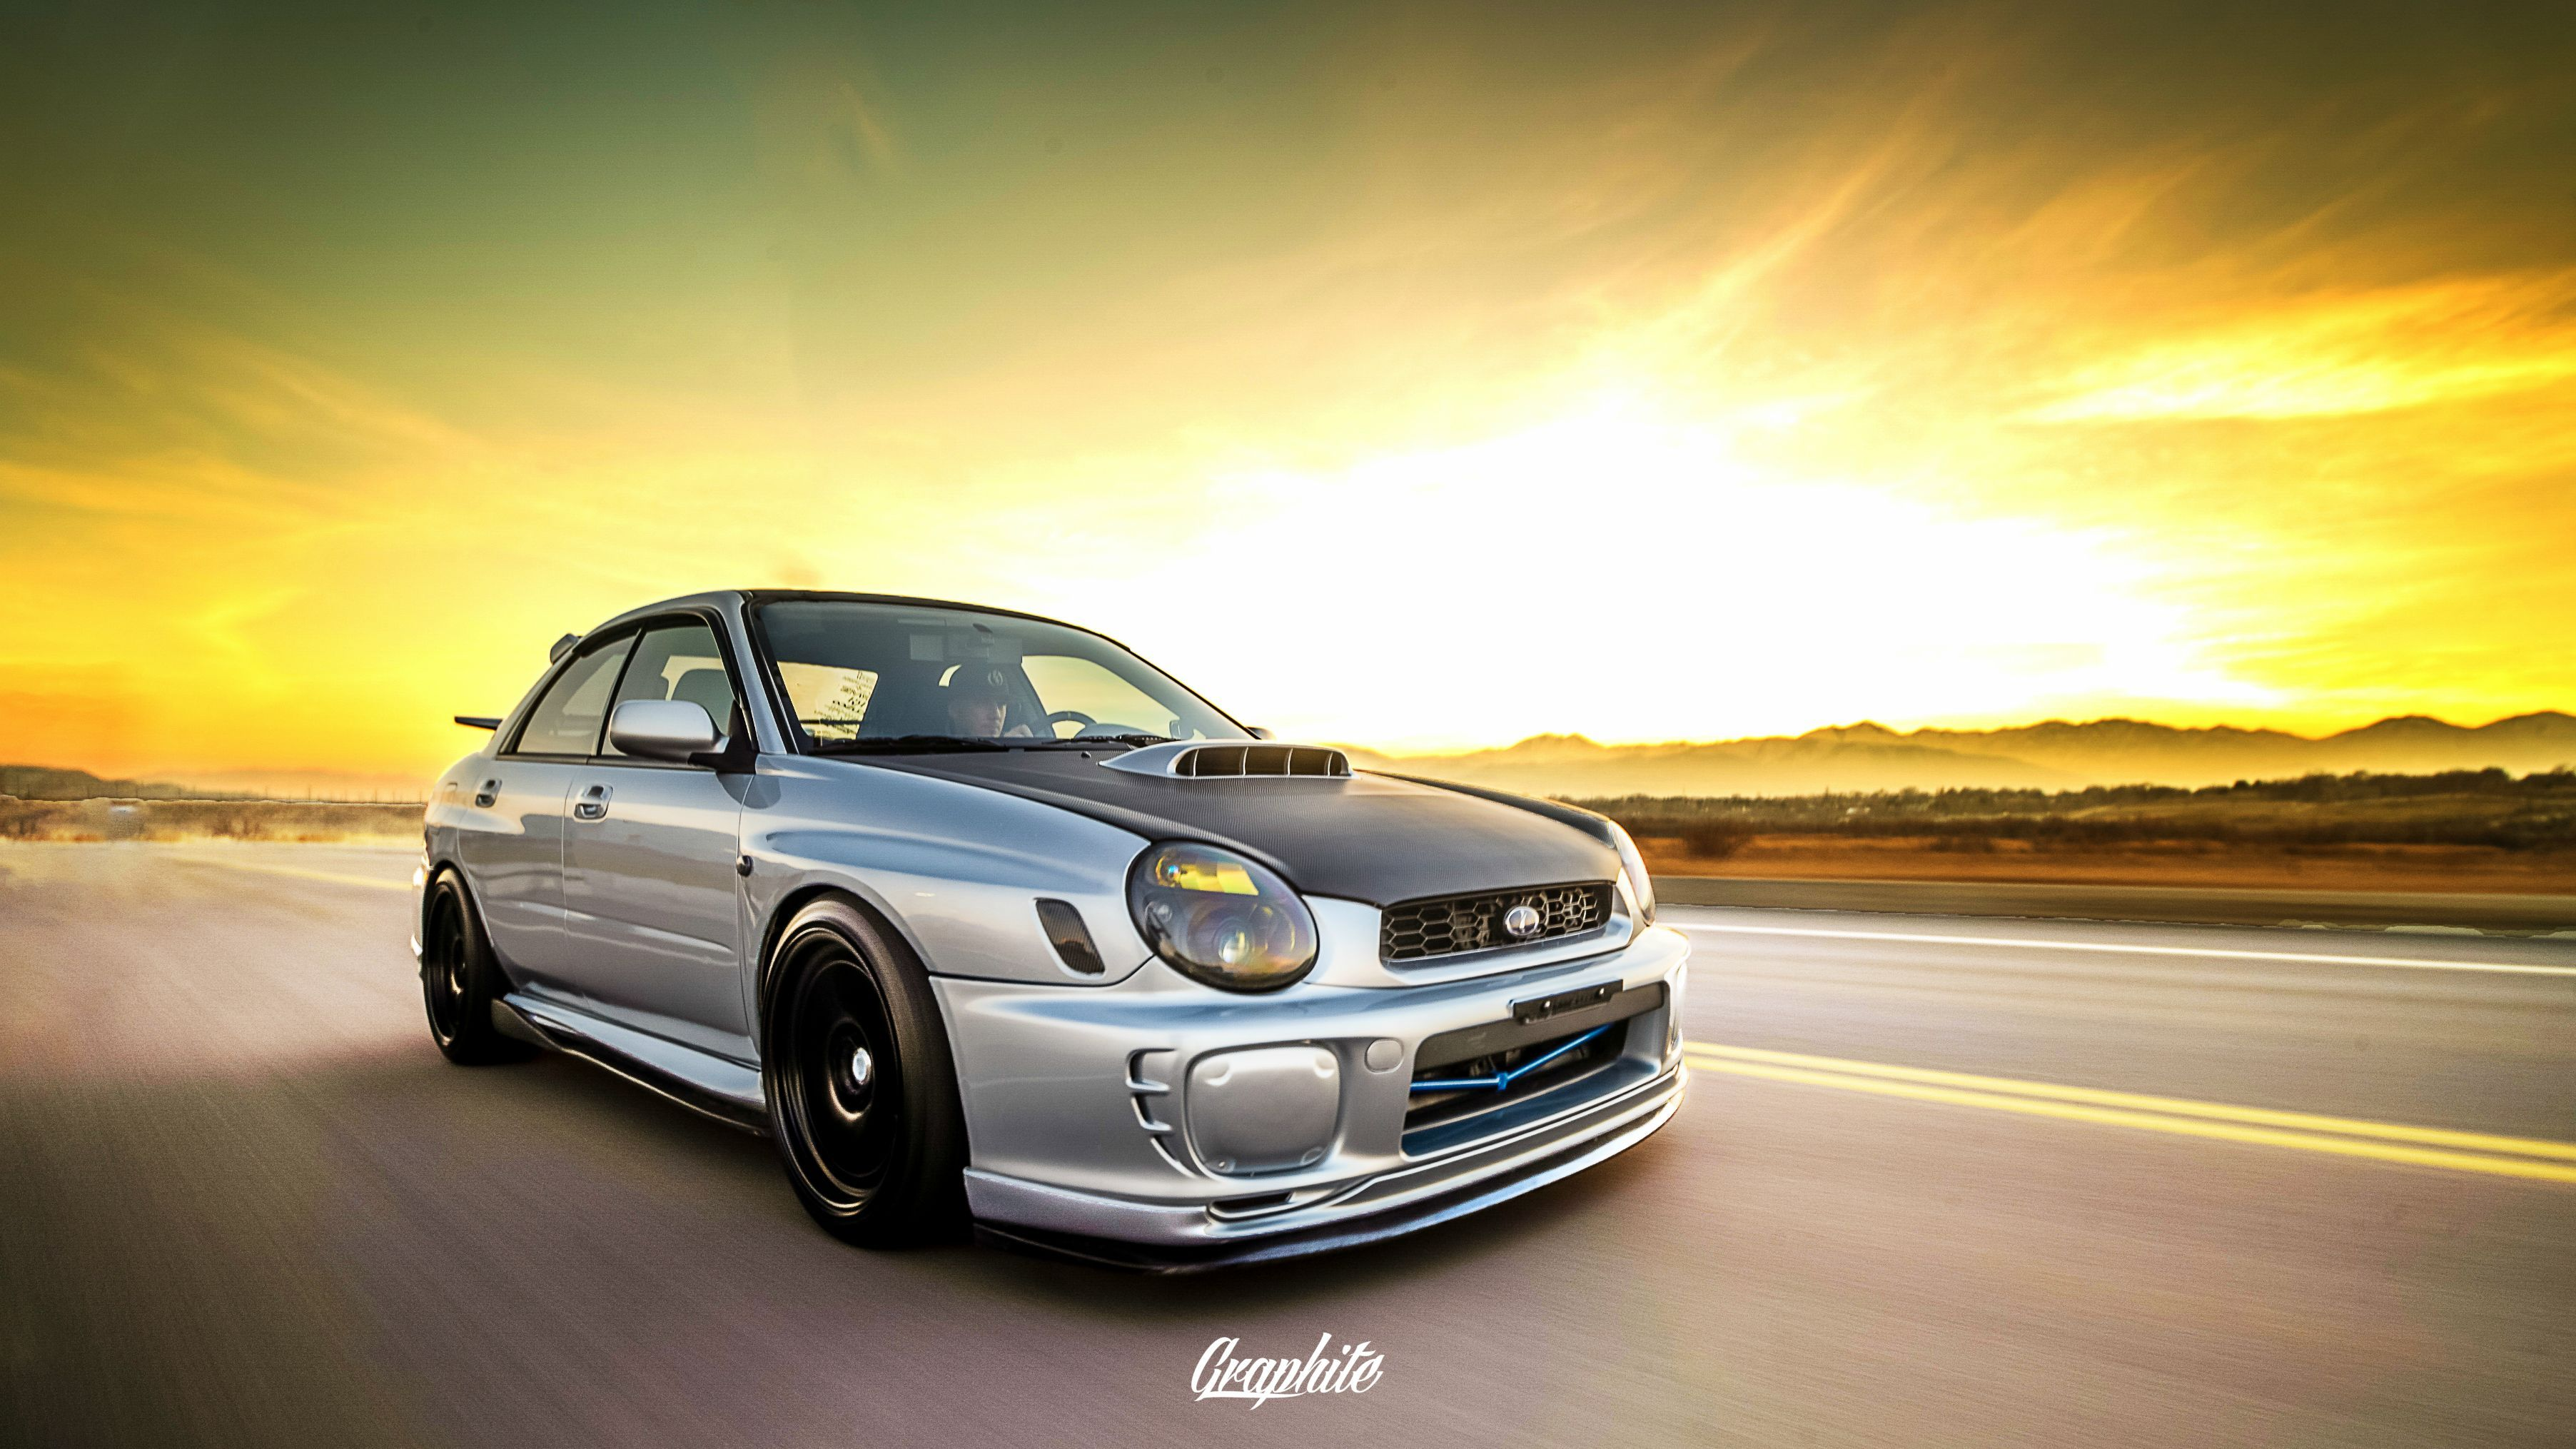 bugeye wrx at sunset tynan subaru pinterest. Black Bedroom Furniture Sets. Home Design Ideas